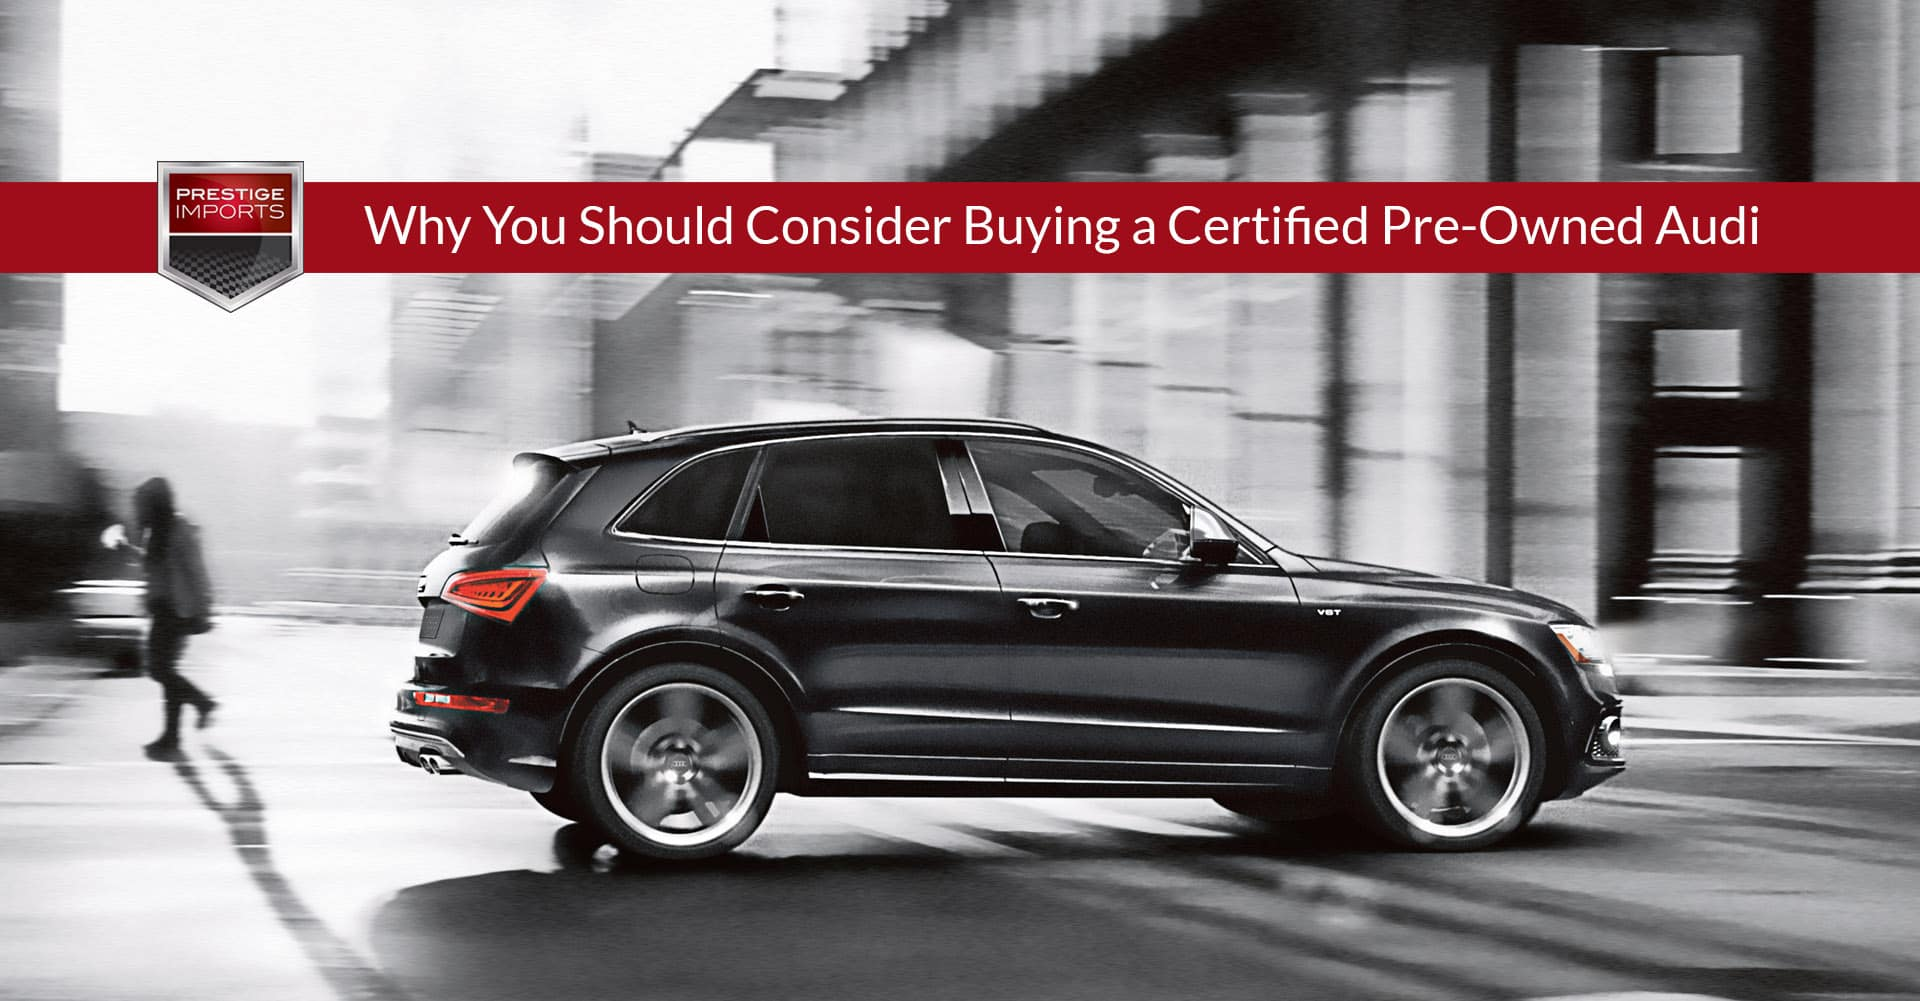 Why You Should Consider Buying a Certified Pre-Owned Audi